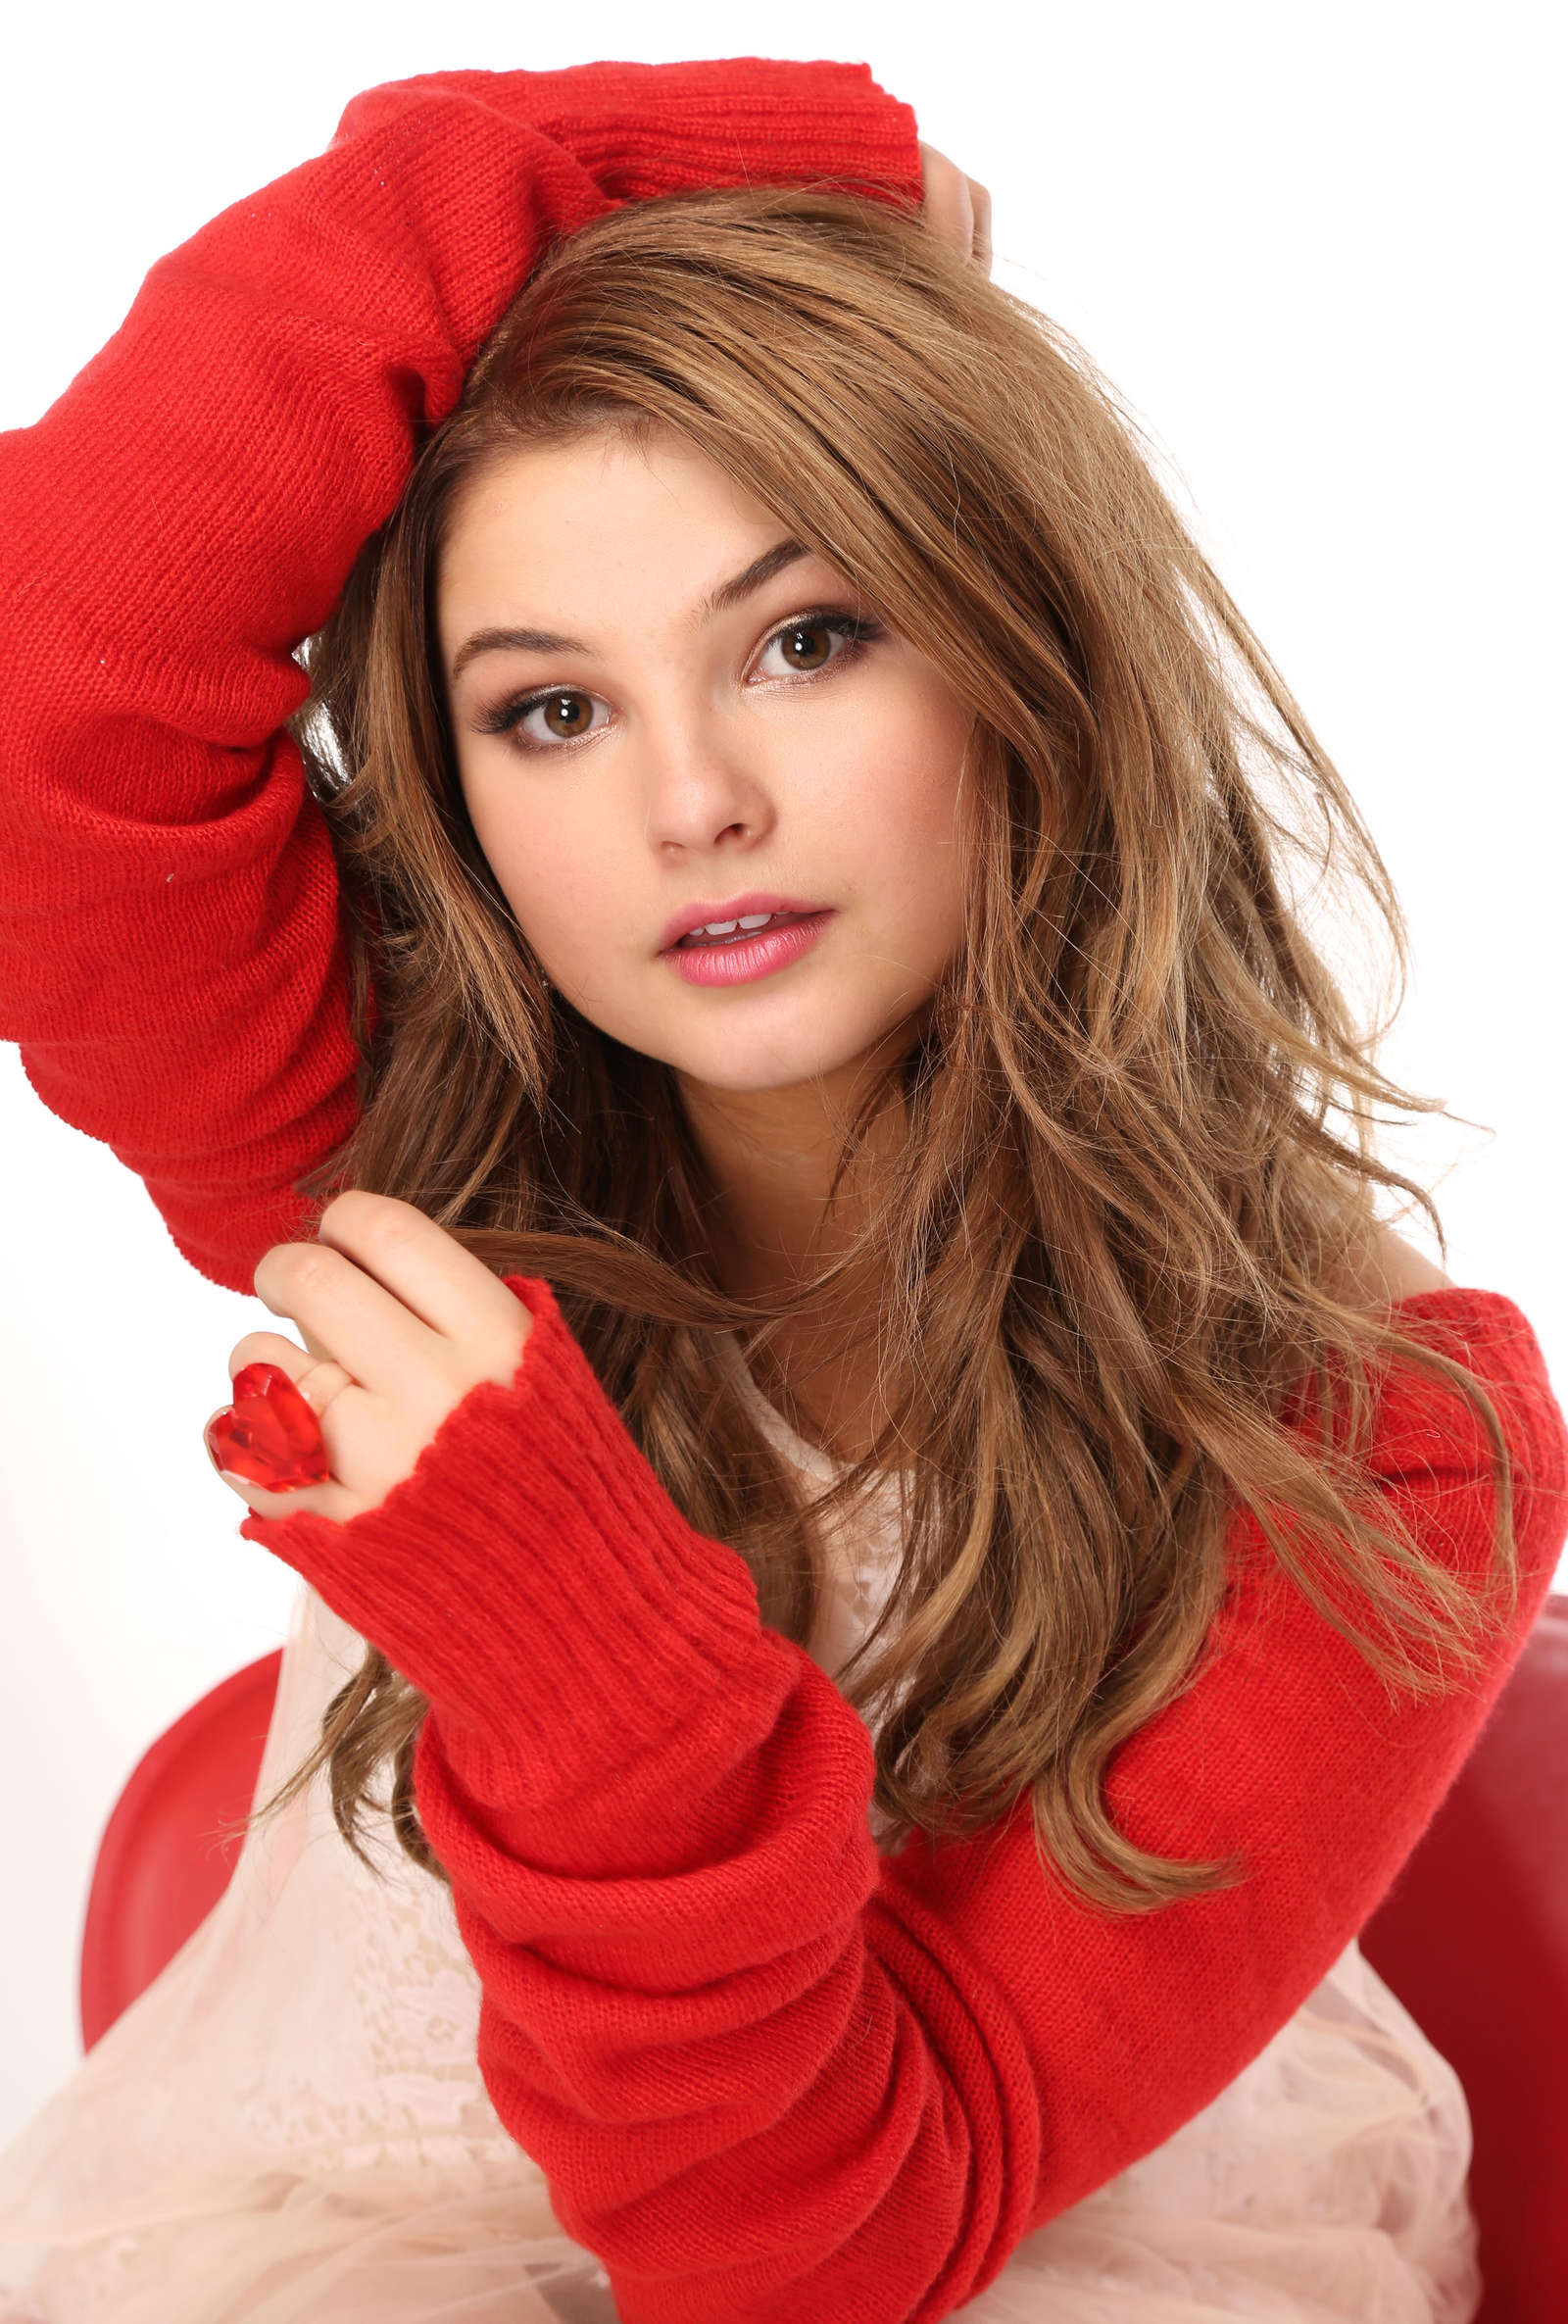 stefanie scott 2013 sara jaye weiss photoshoot 14